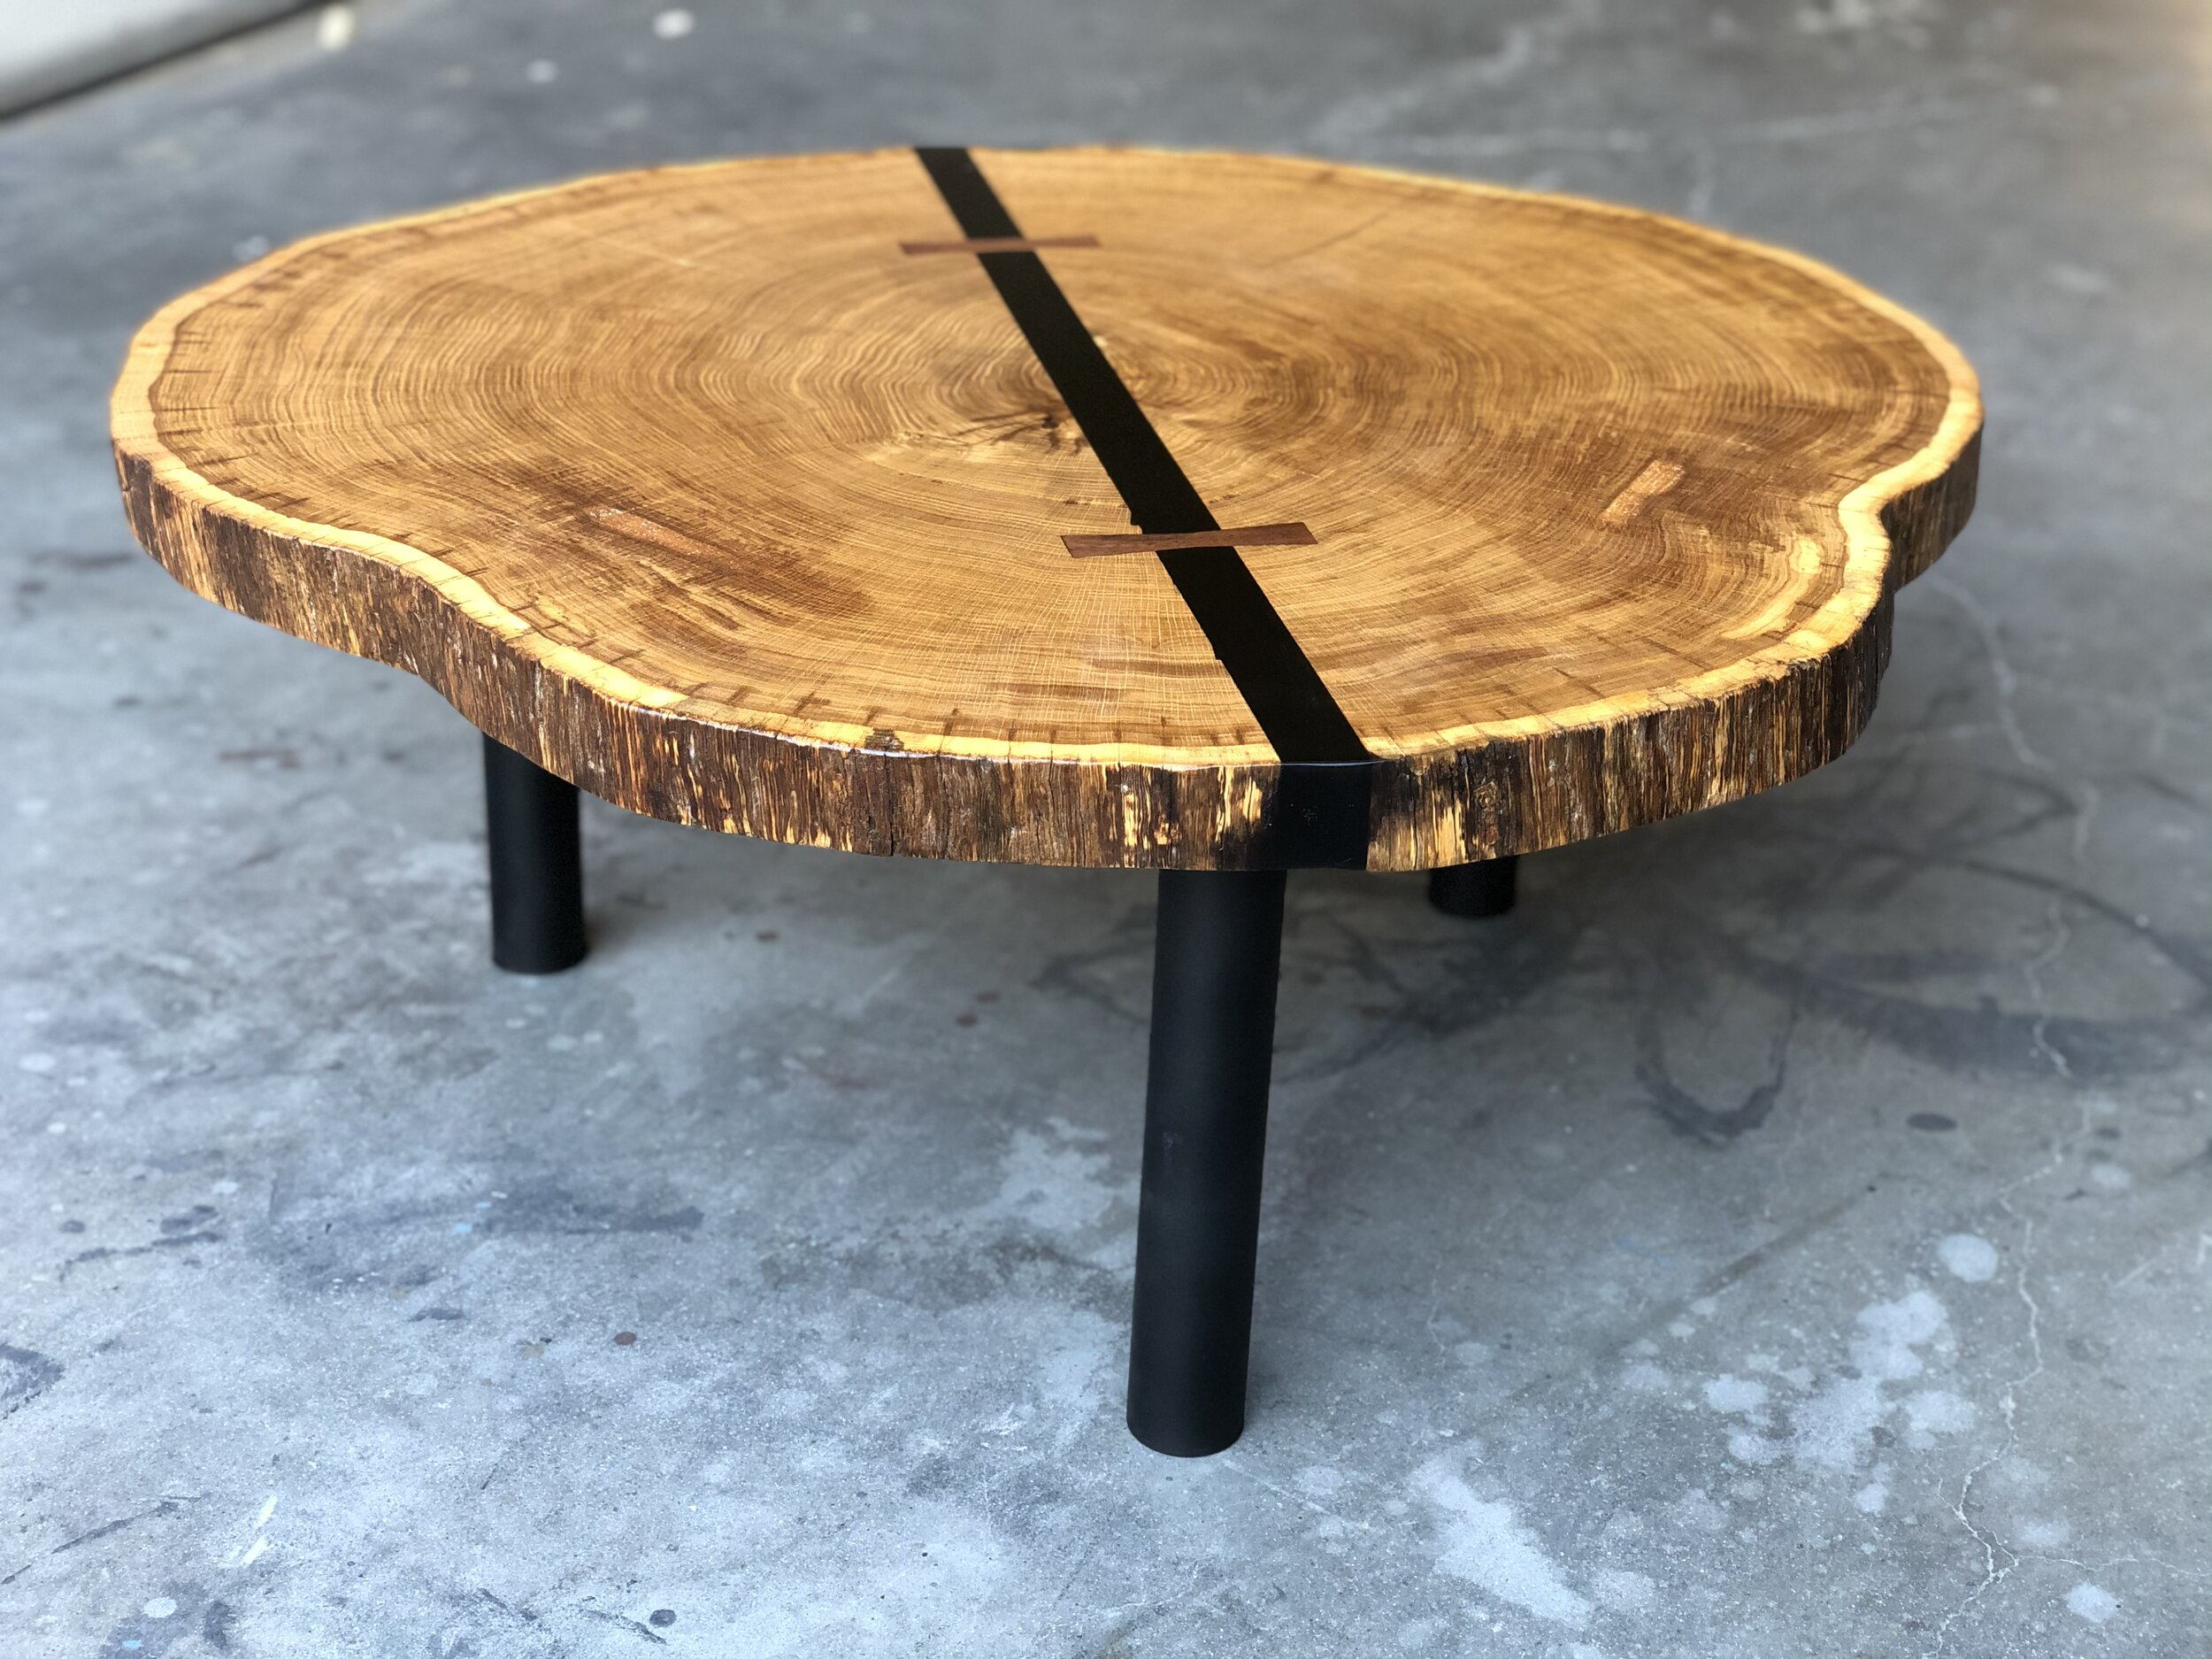 Picture of: Live Edge Tables Pasadenaville Live Edge Wood Slab Tables And Furniture Los Angeles California